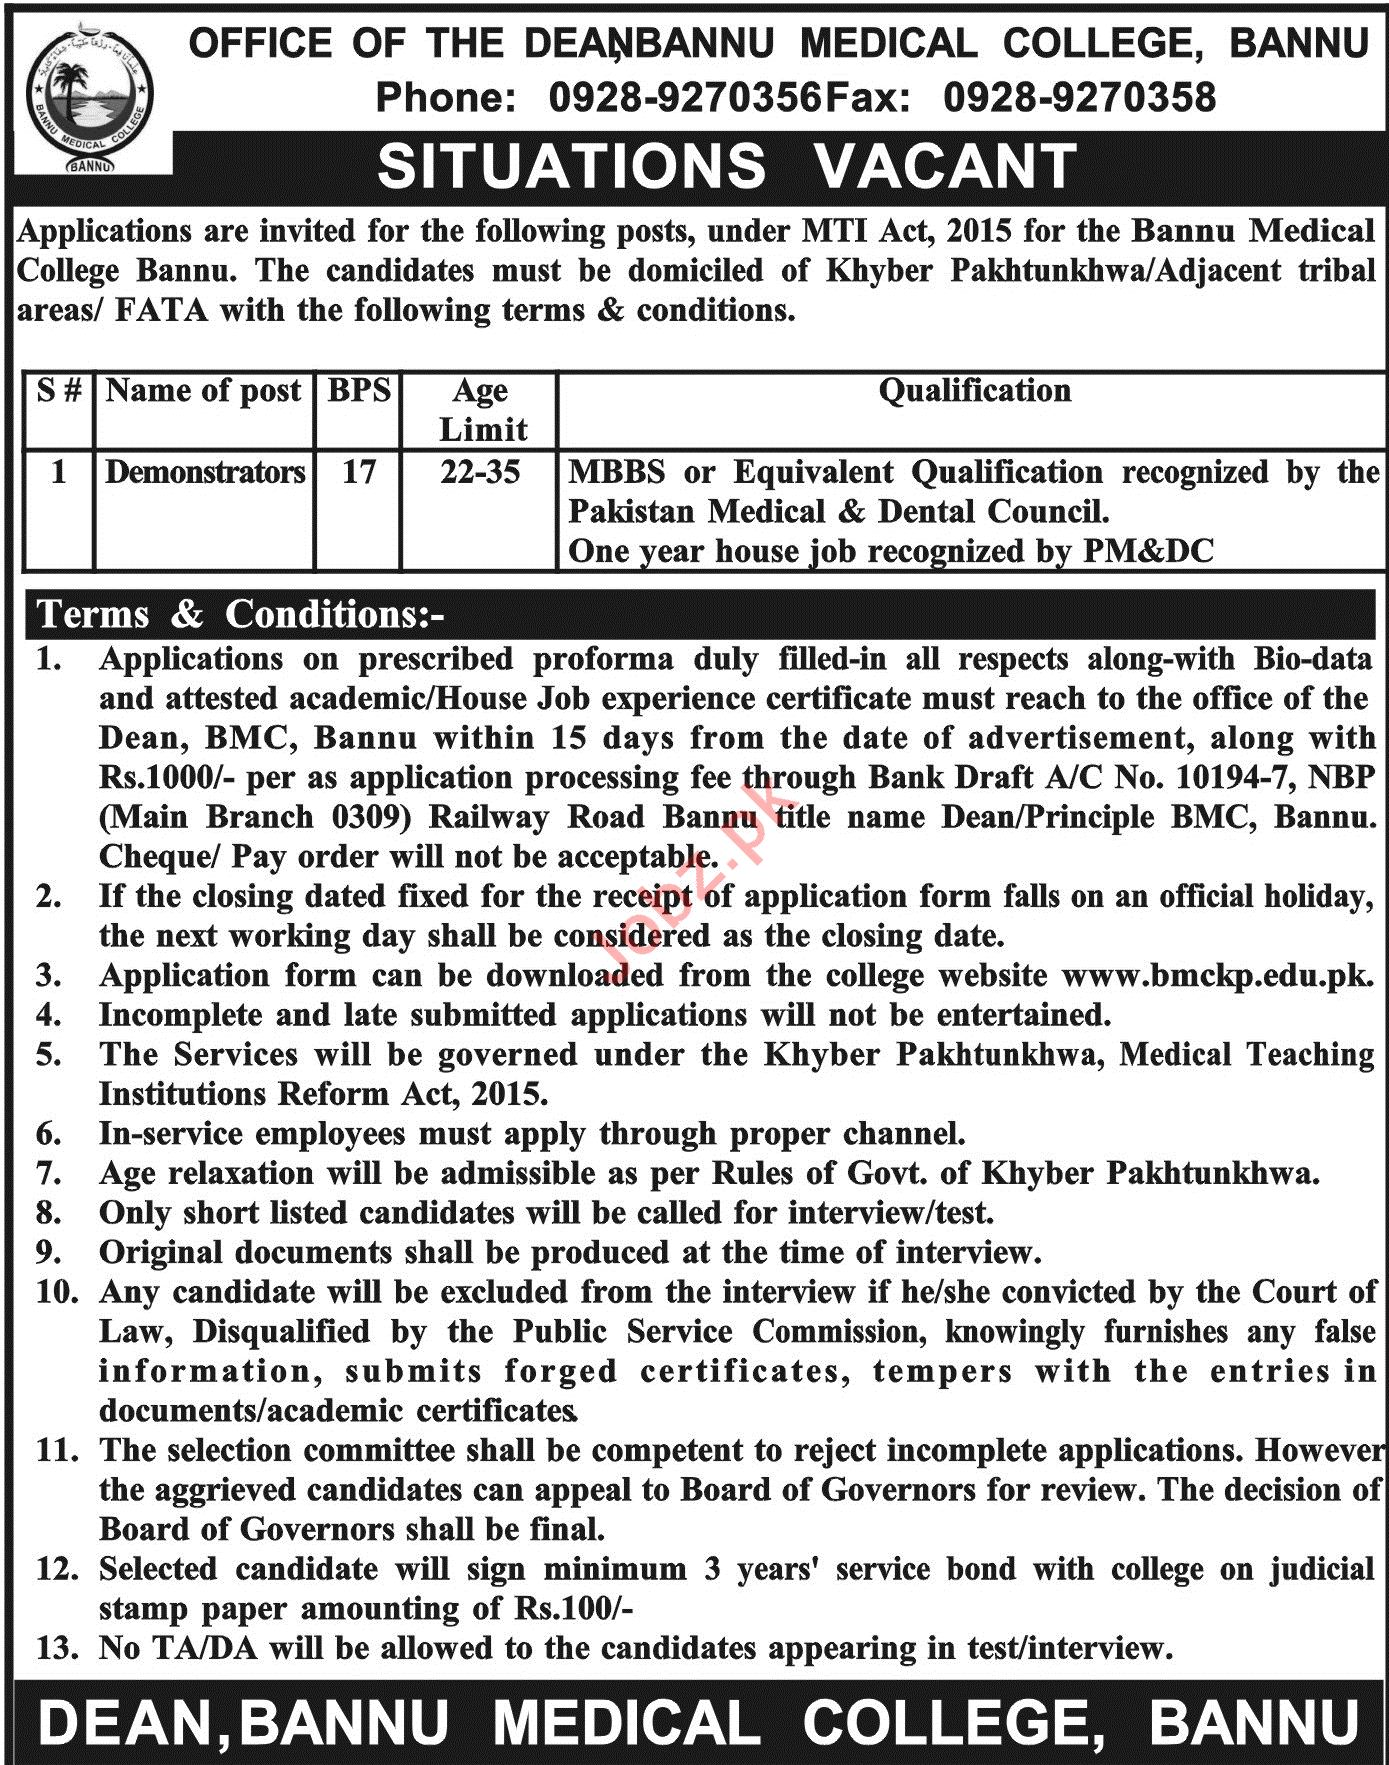 Bannu Medical College Bannu Demonstrators Jobs 2019